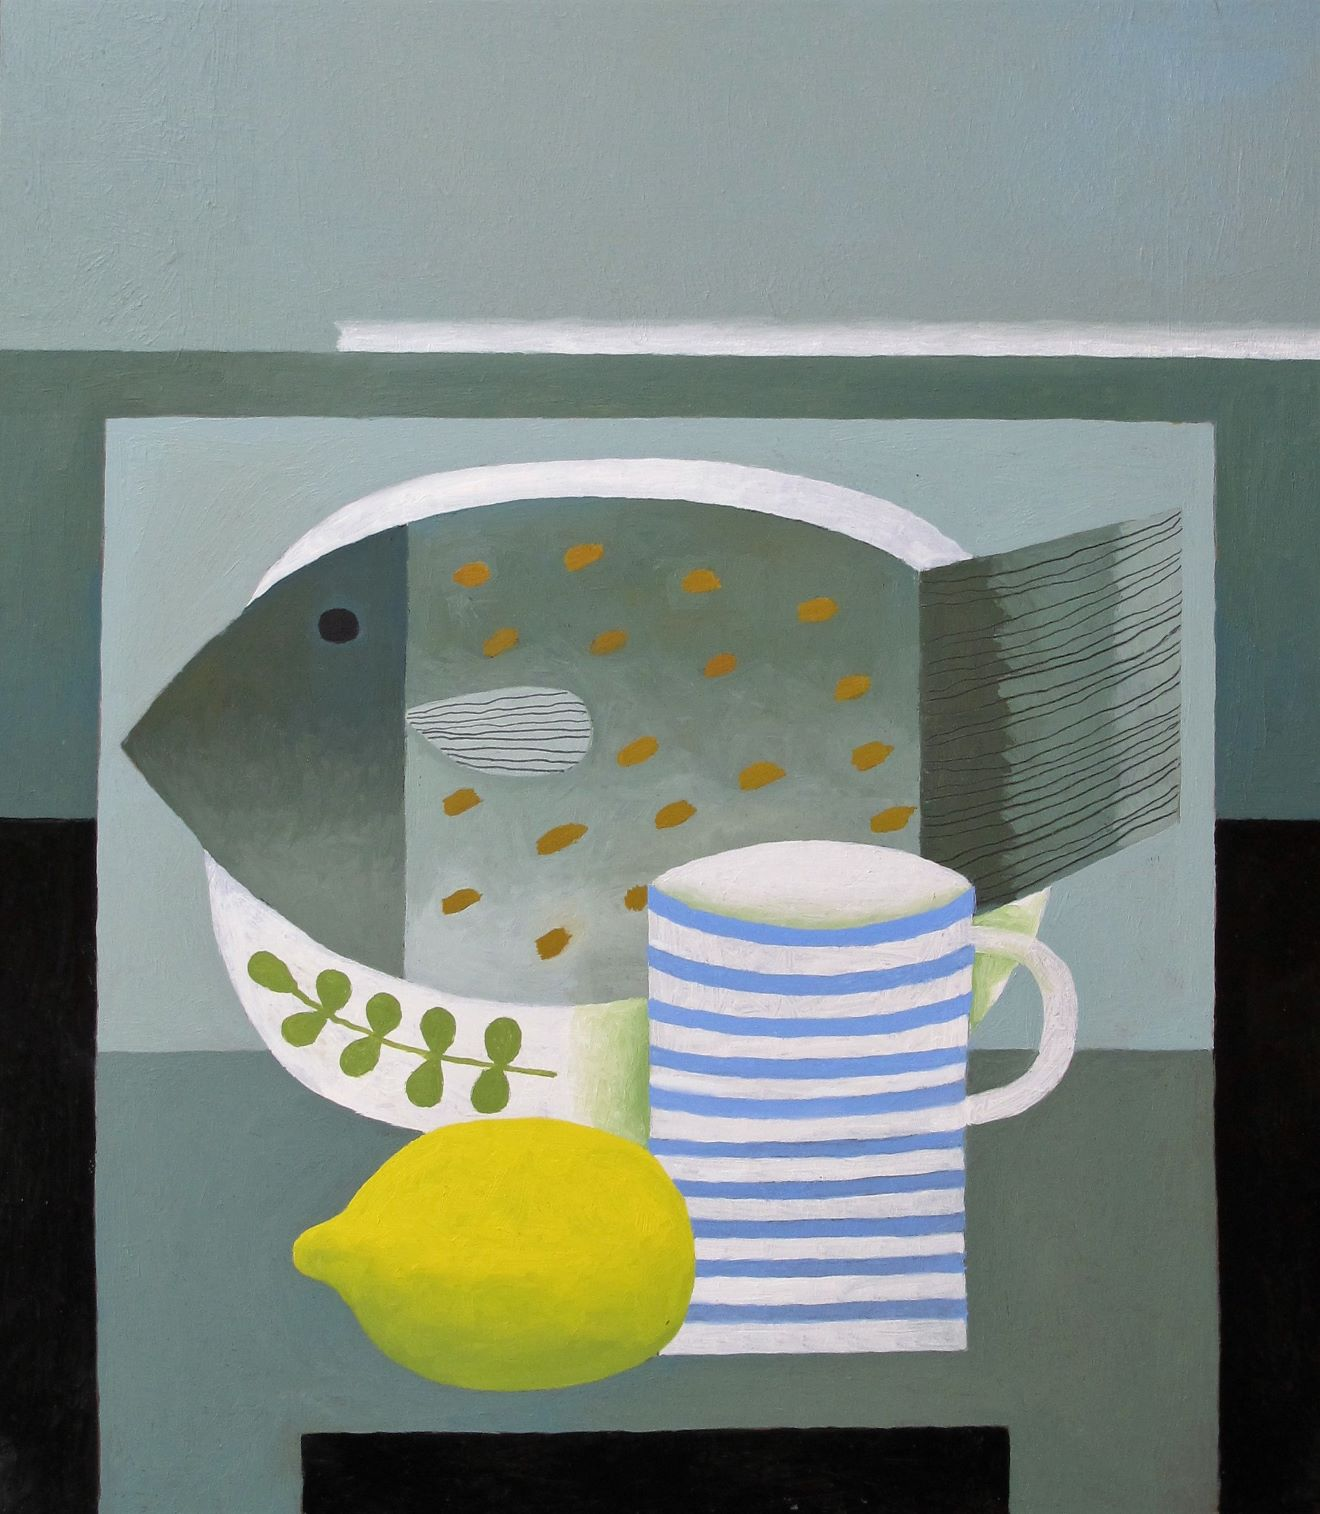 still life painting of fish yellow lemon blue/white striped mug and herbs by reg cartwright 2018